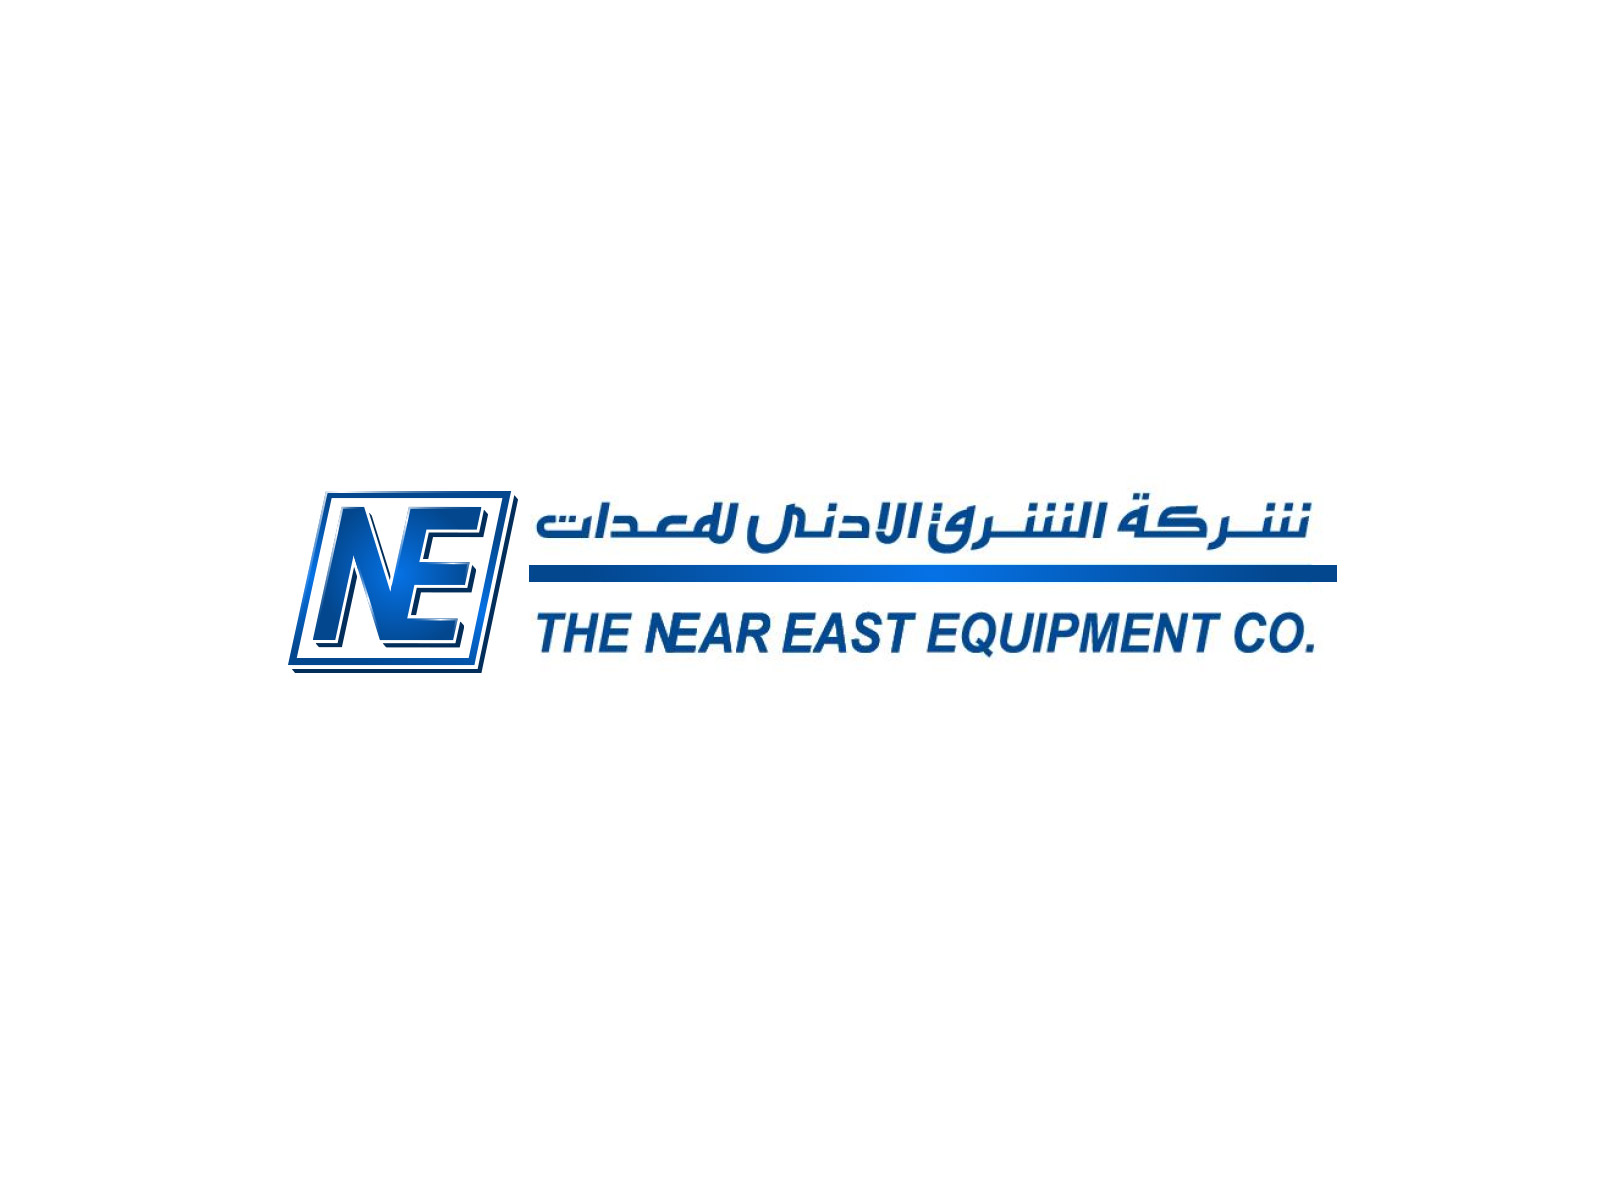 Logo Design by olii - Entry No. 198 in the Logo Design Contest Imaginative Logo Design for The Near East Equipment Co..